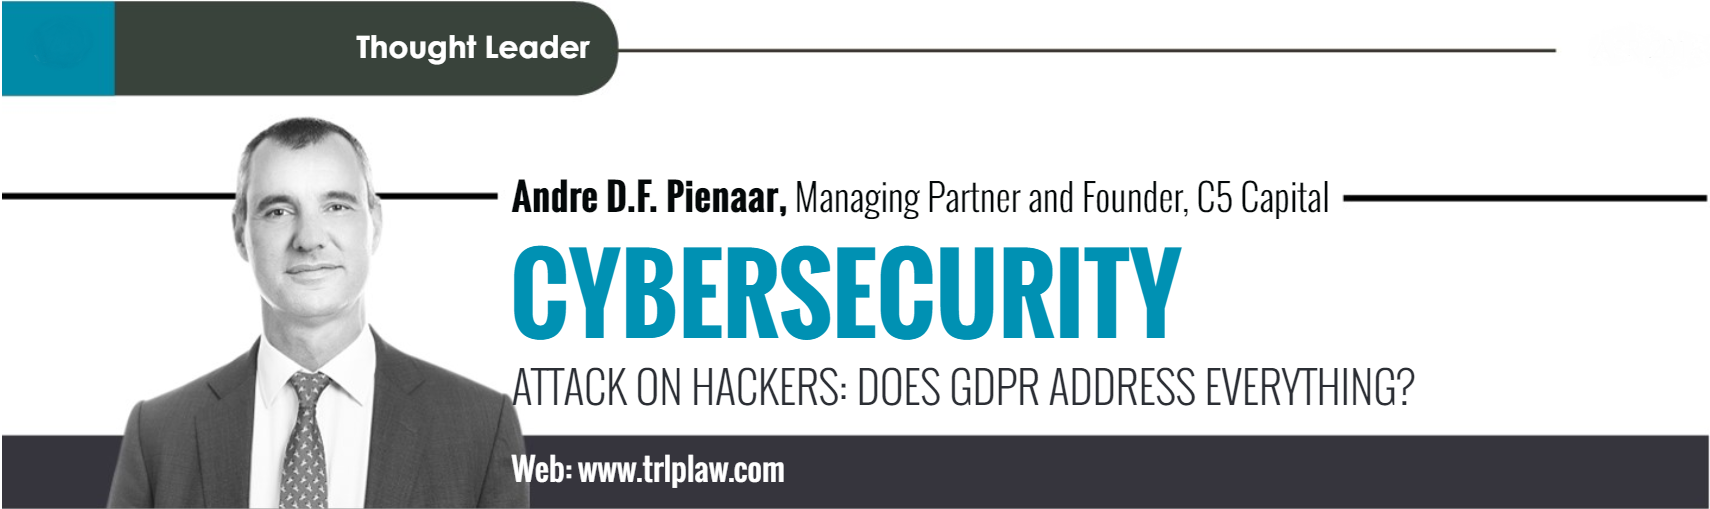 André Pienaar gdpr cyber security c5